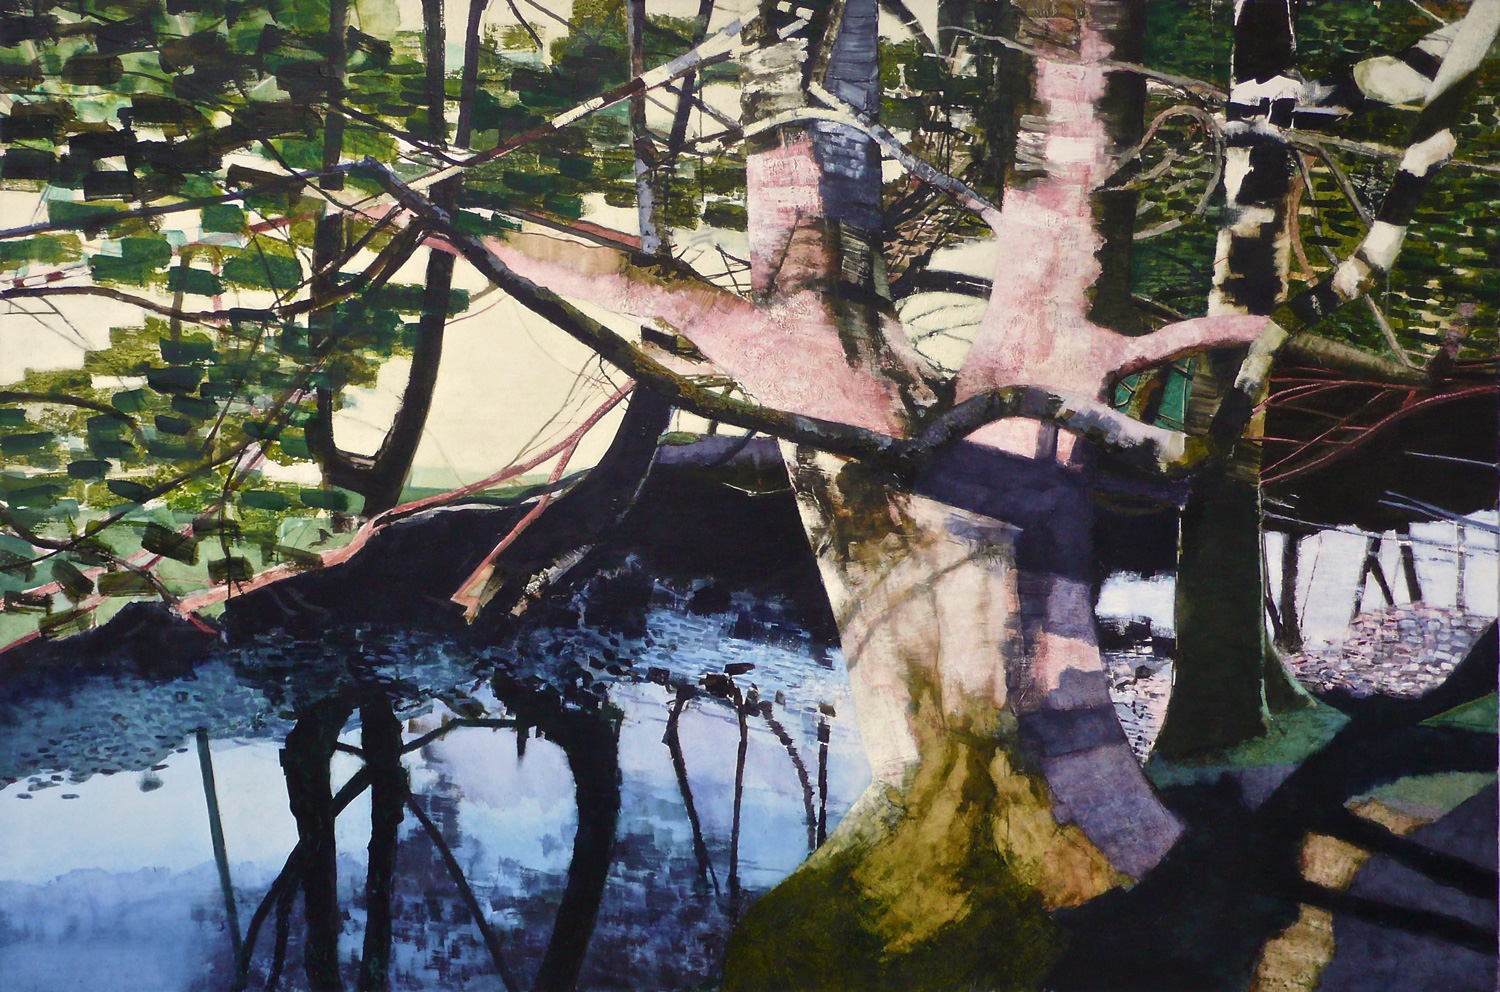 'Easedale Trees' - Oil on Canvas, 119.5x178.7cm, 2019